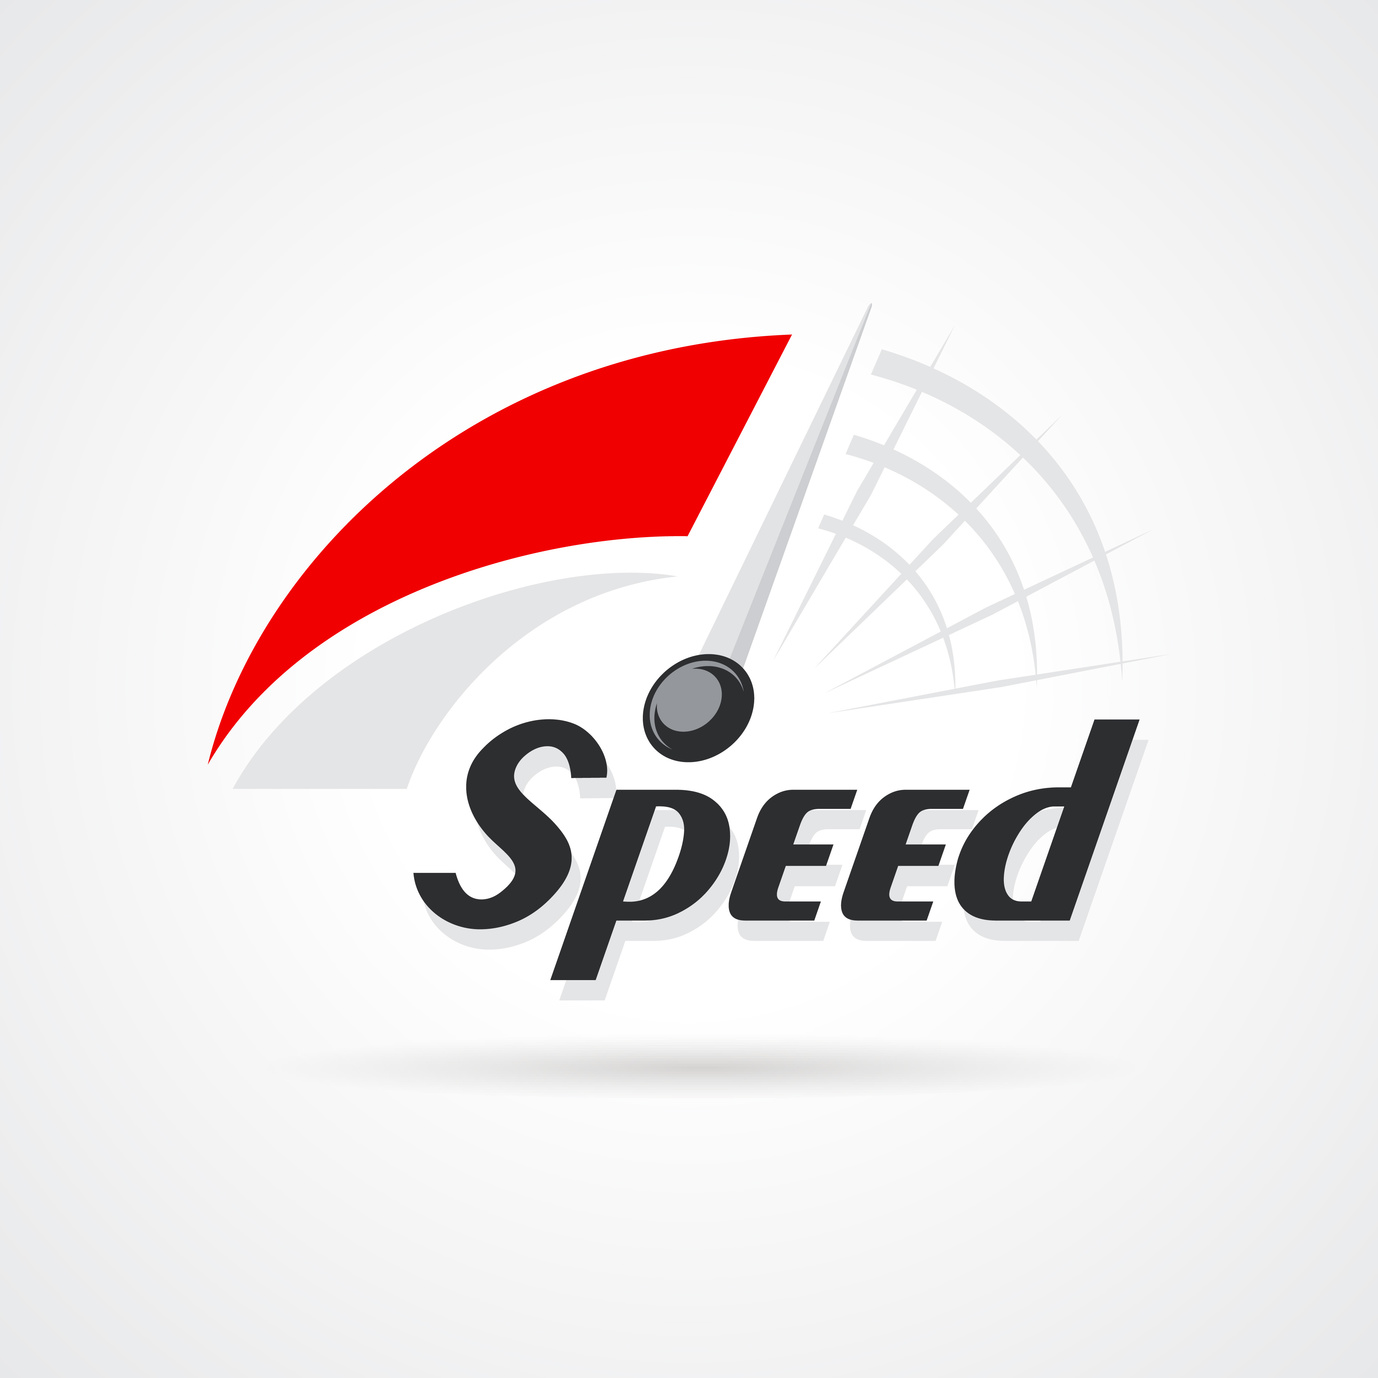 seo speed logo test